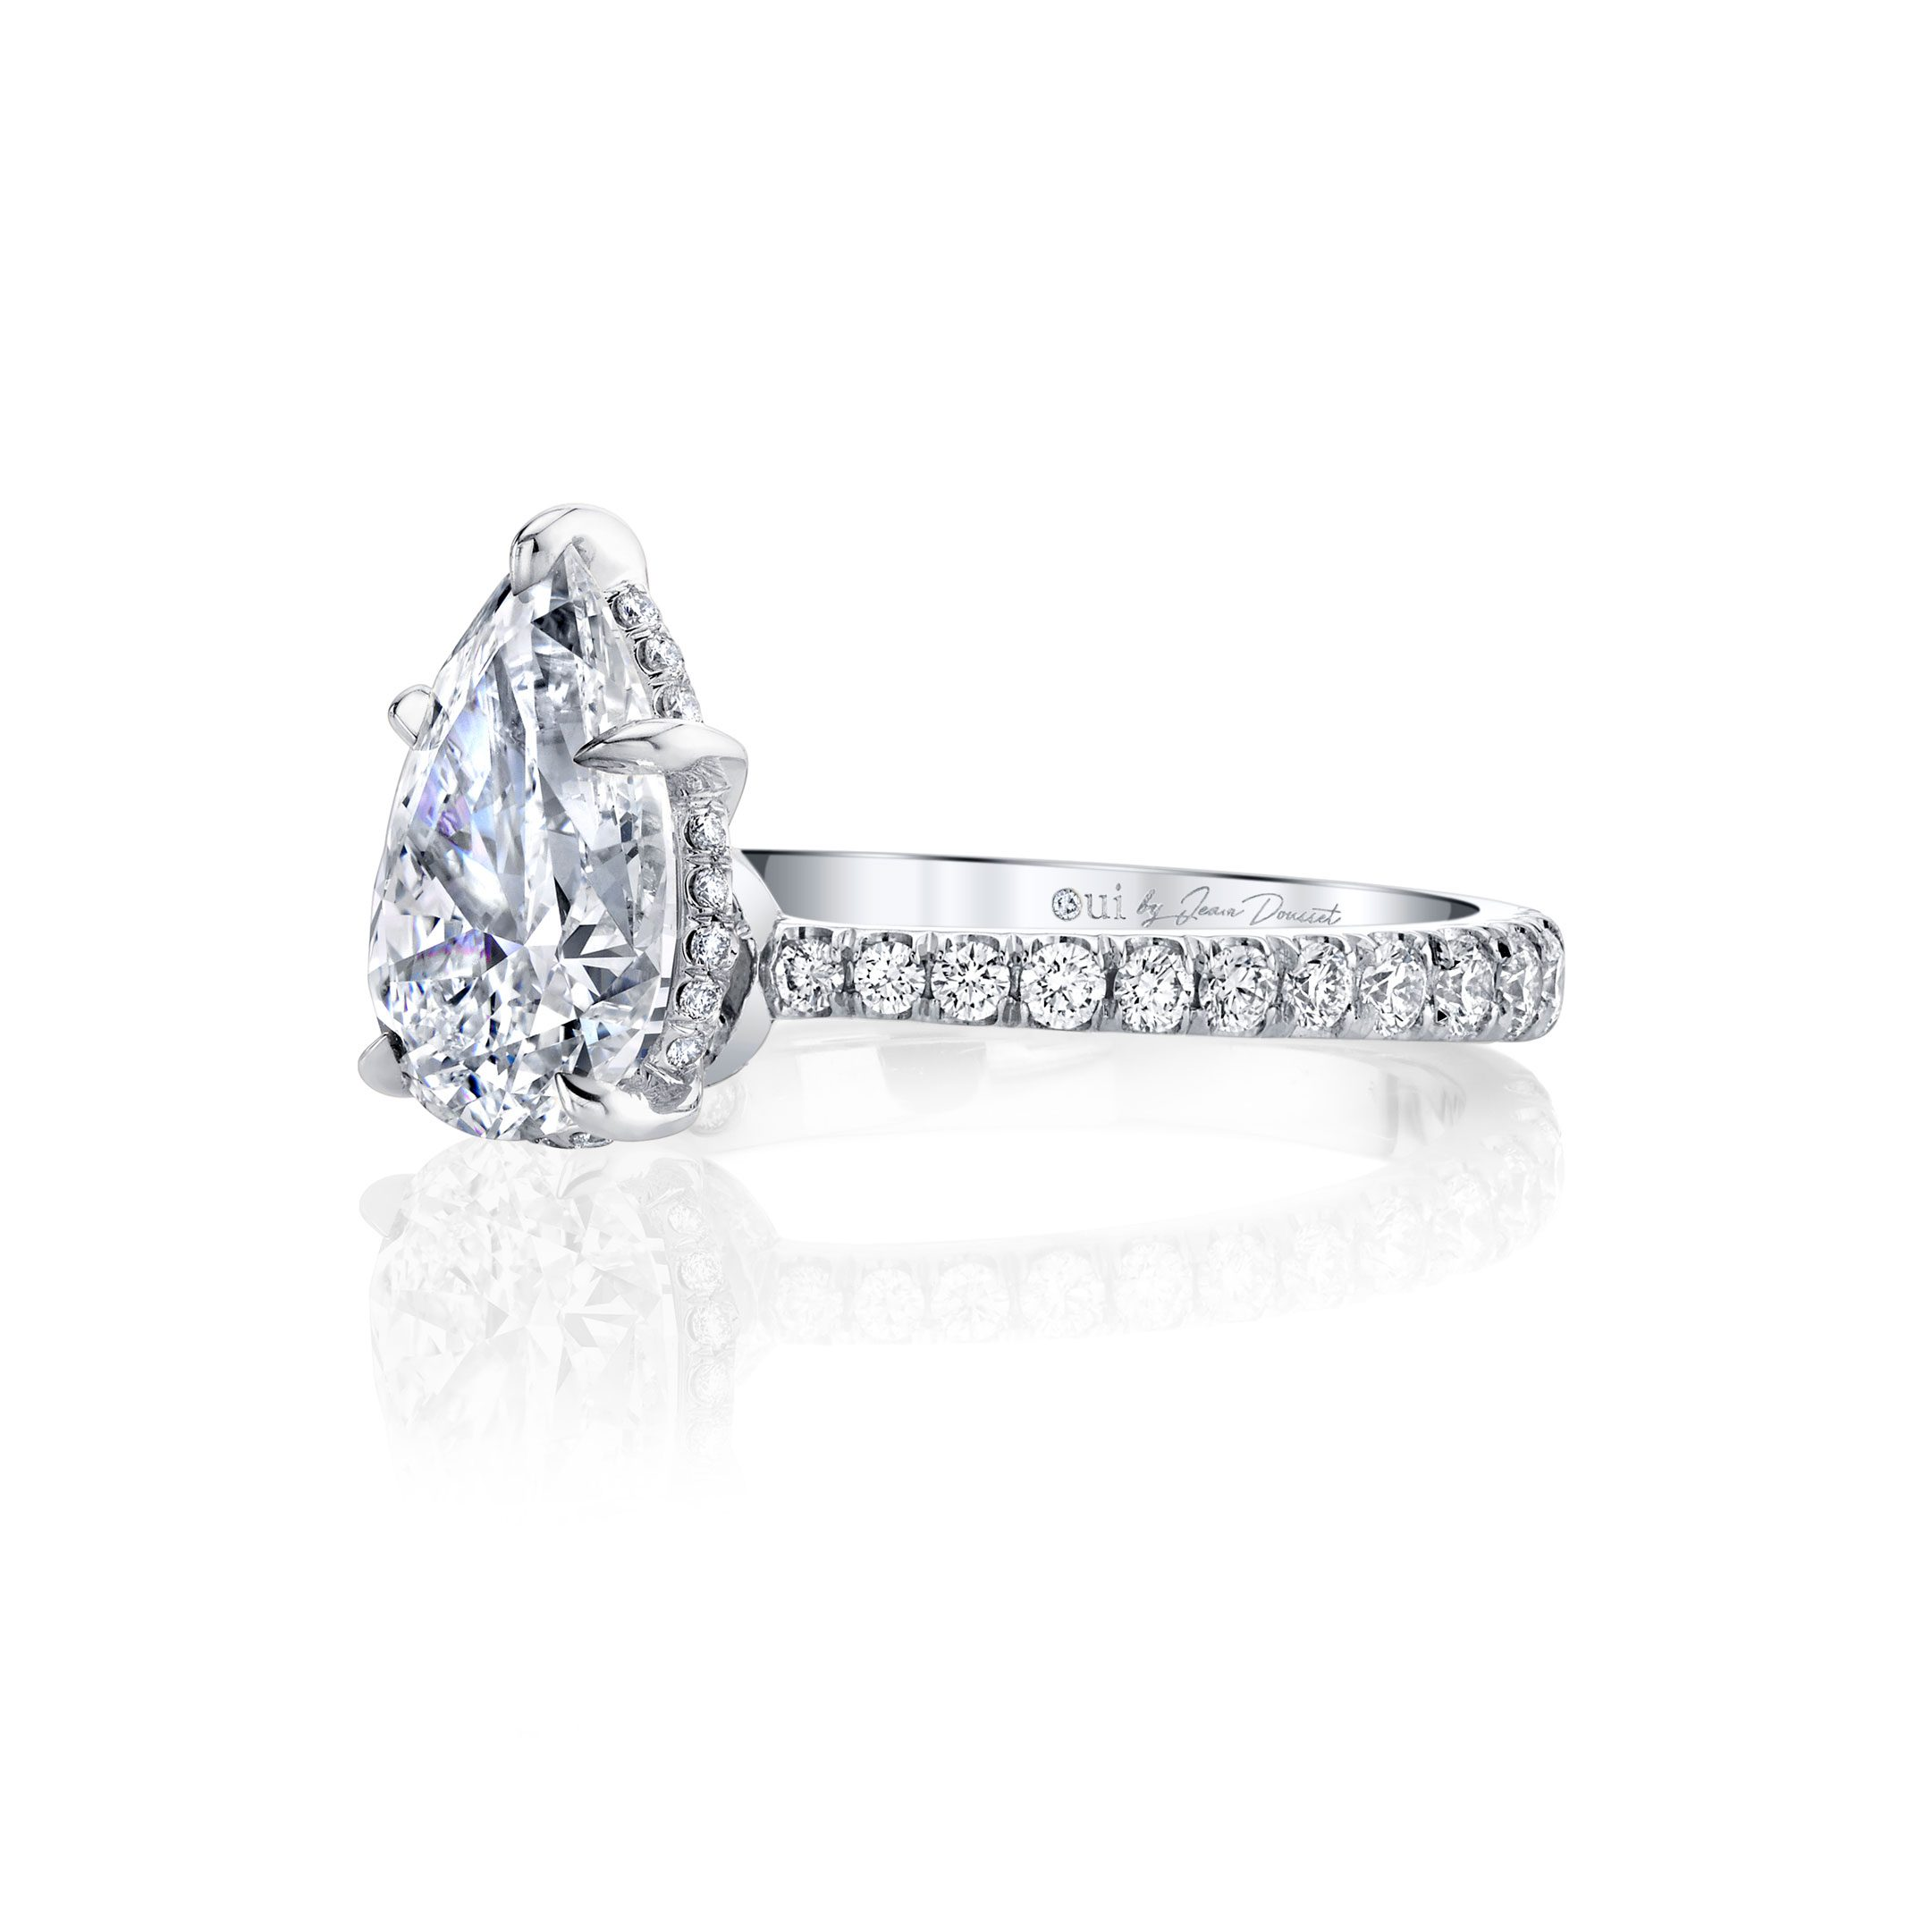 Eloise Solitaire Pear Cut Lab Grown Diamond Engagement Ring Side View with Pavé Band in White Gold Ring Side View